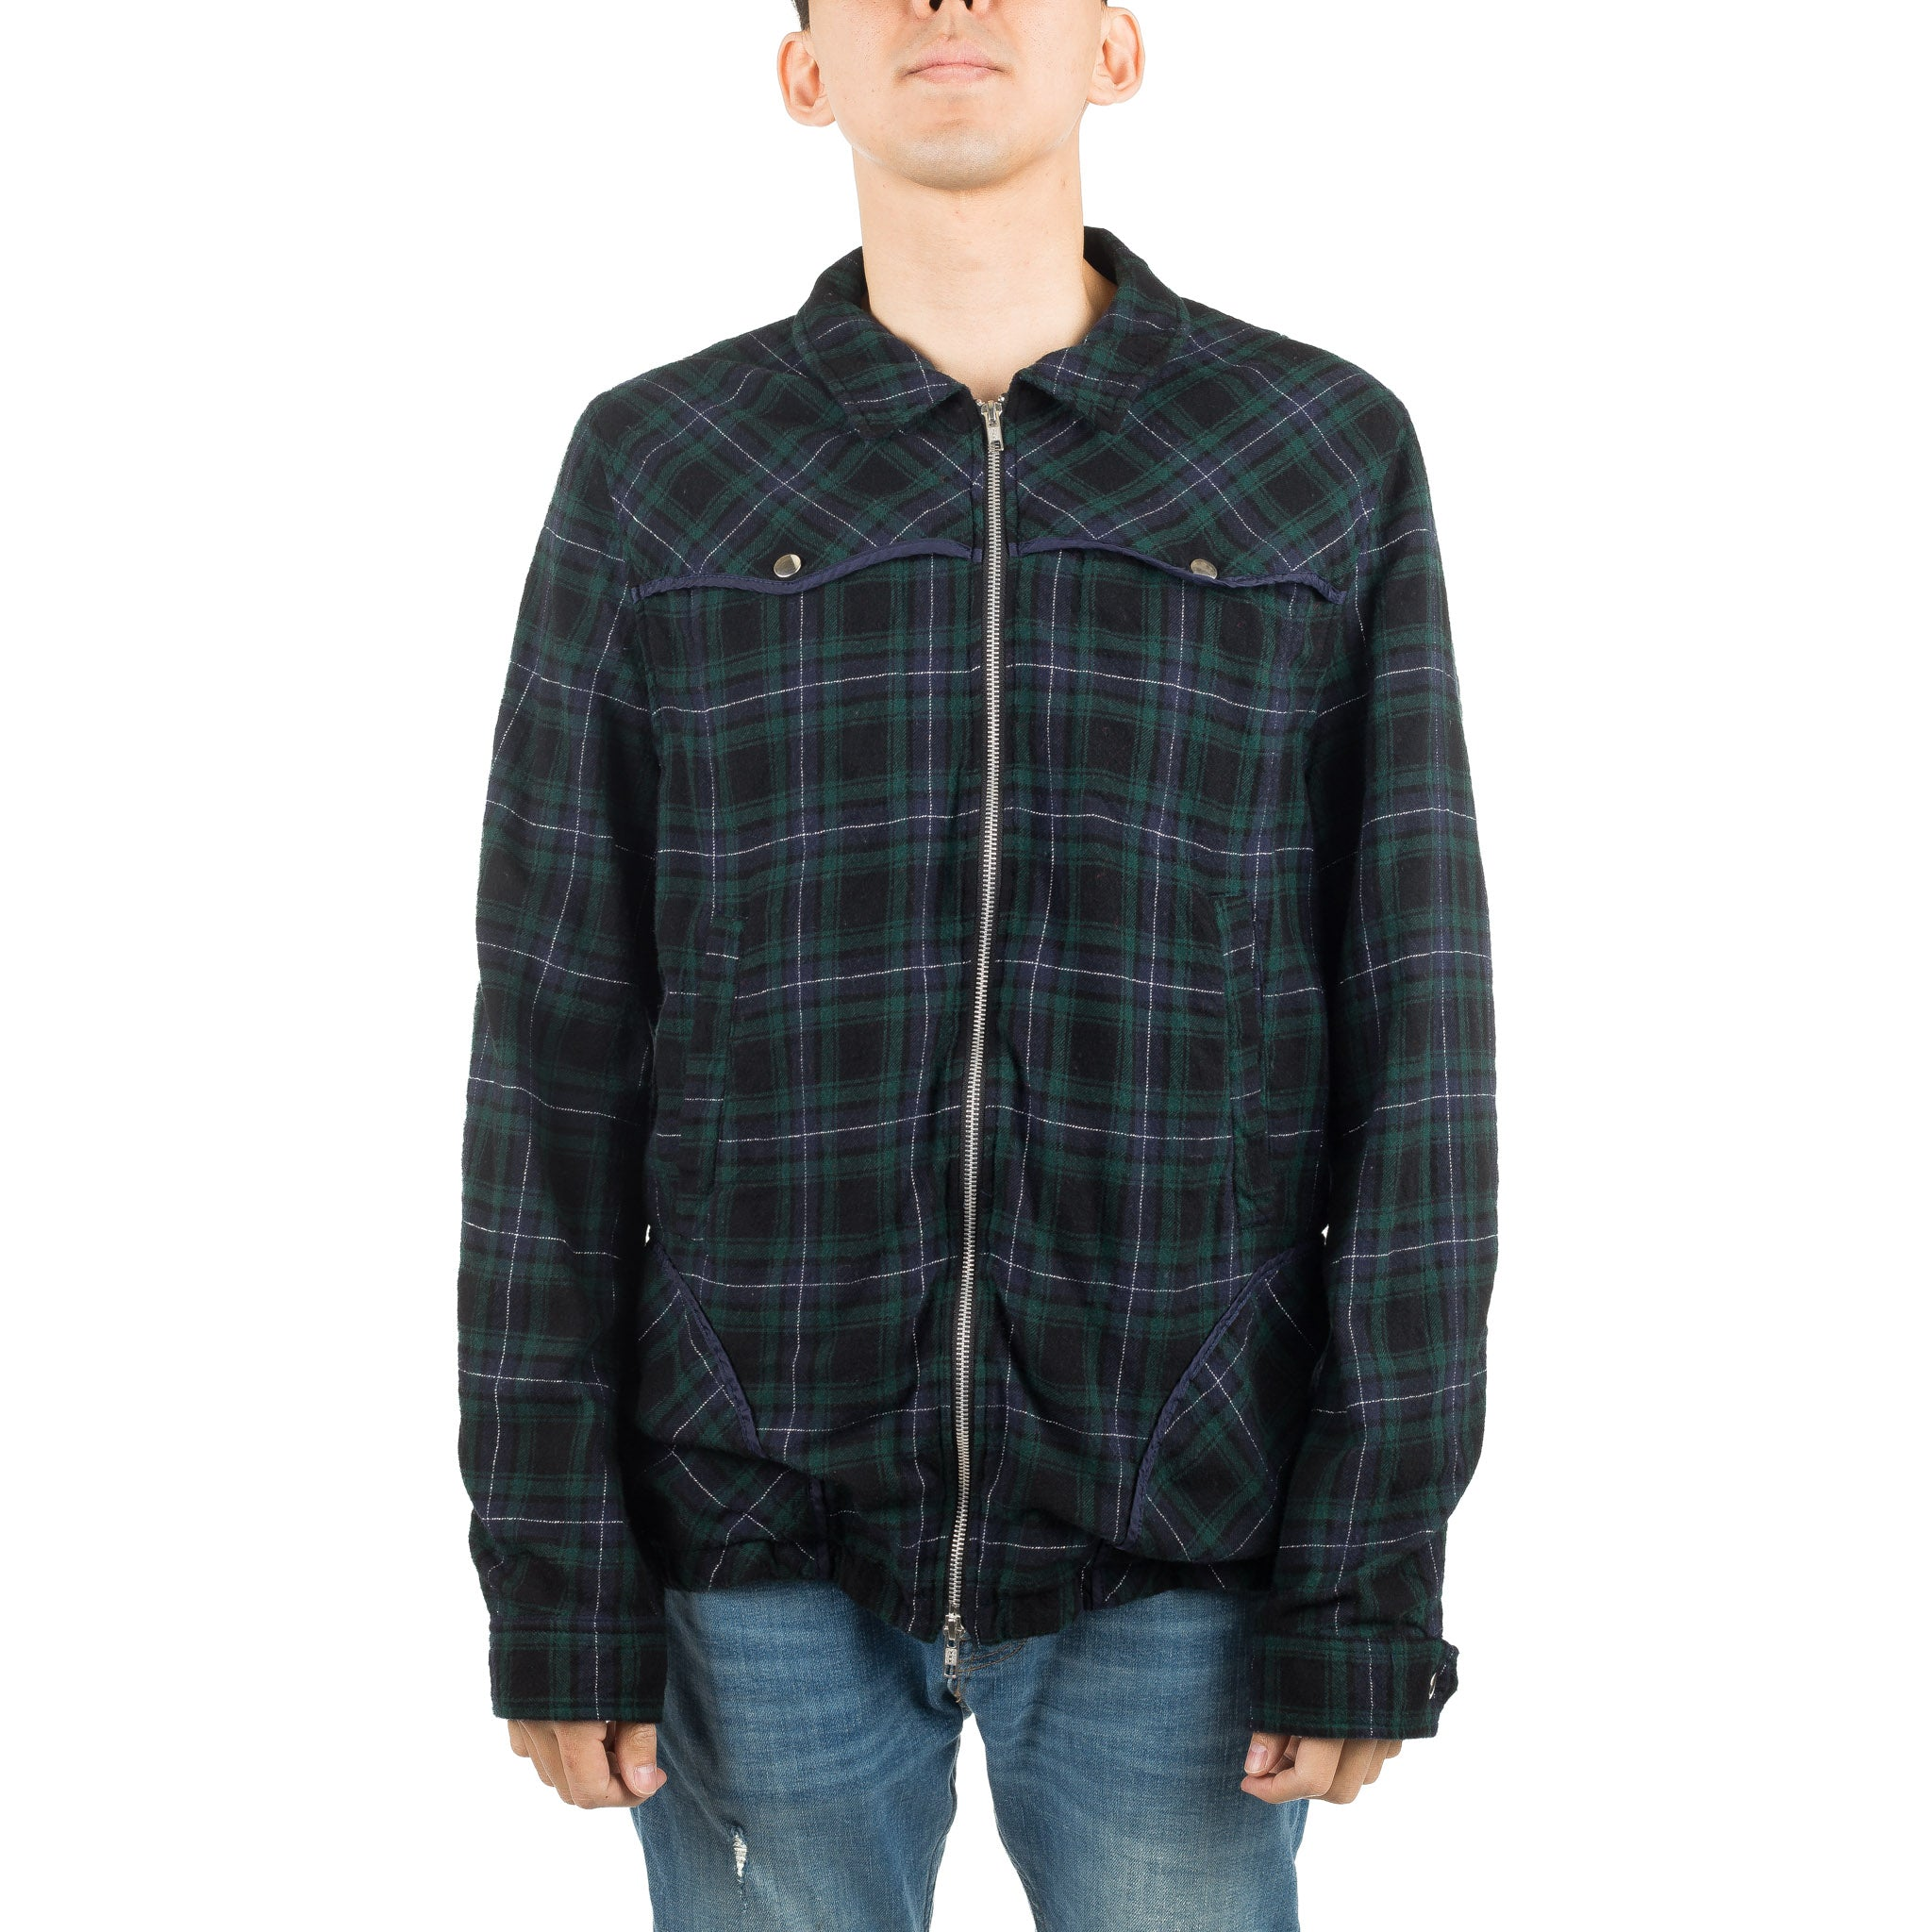 Plaid Jacket JUV4201 Green Check